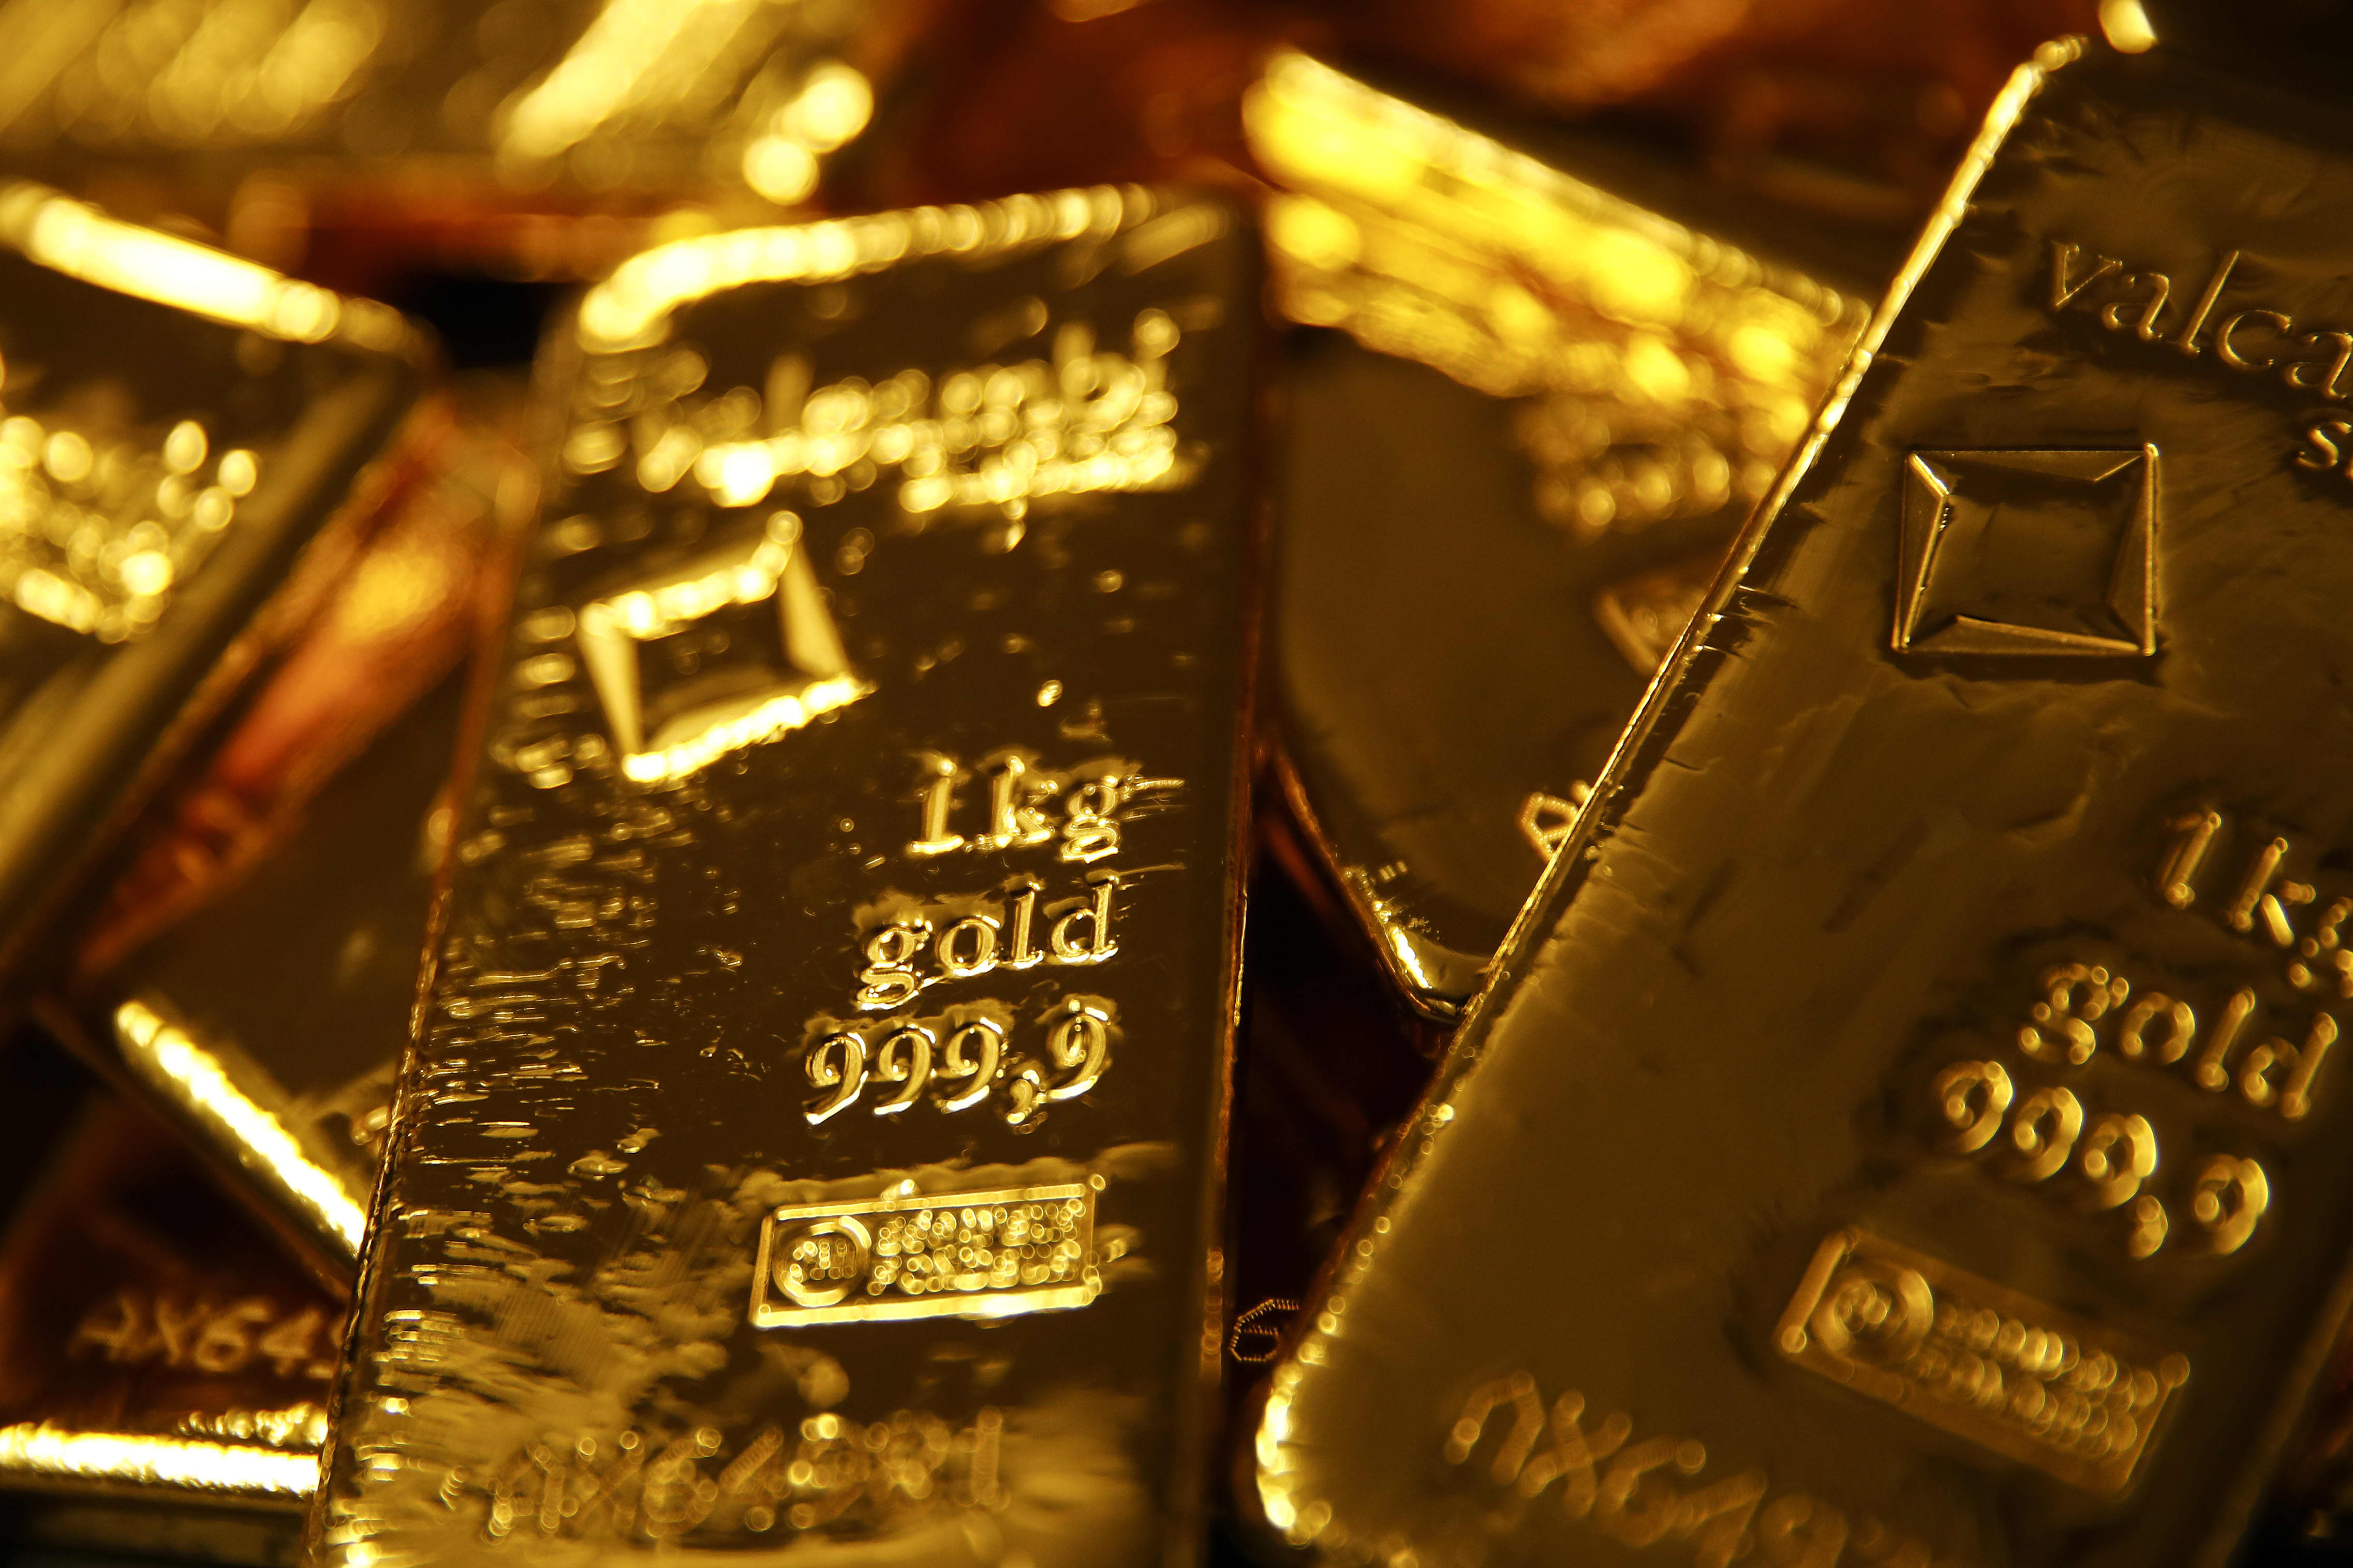 Gold prices could soar to $2,000 next year, says strategist